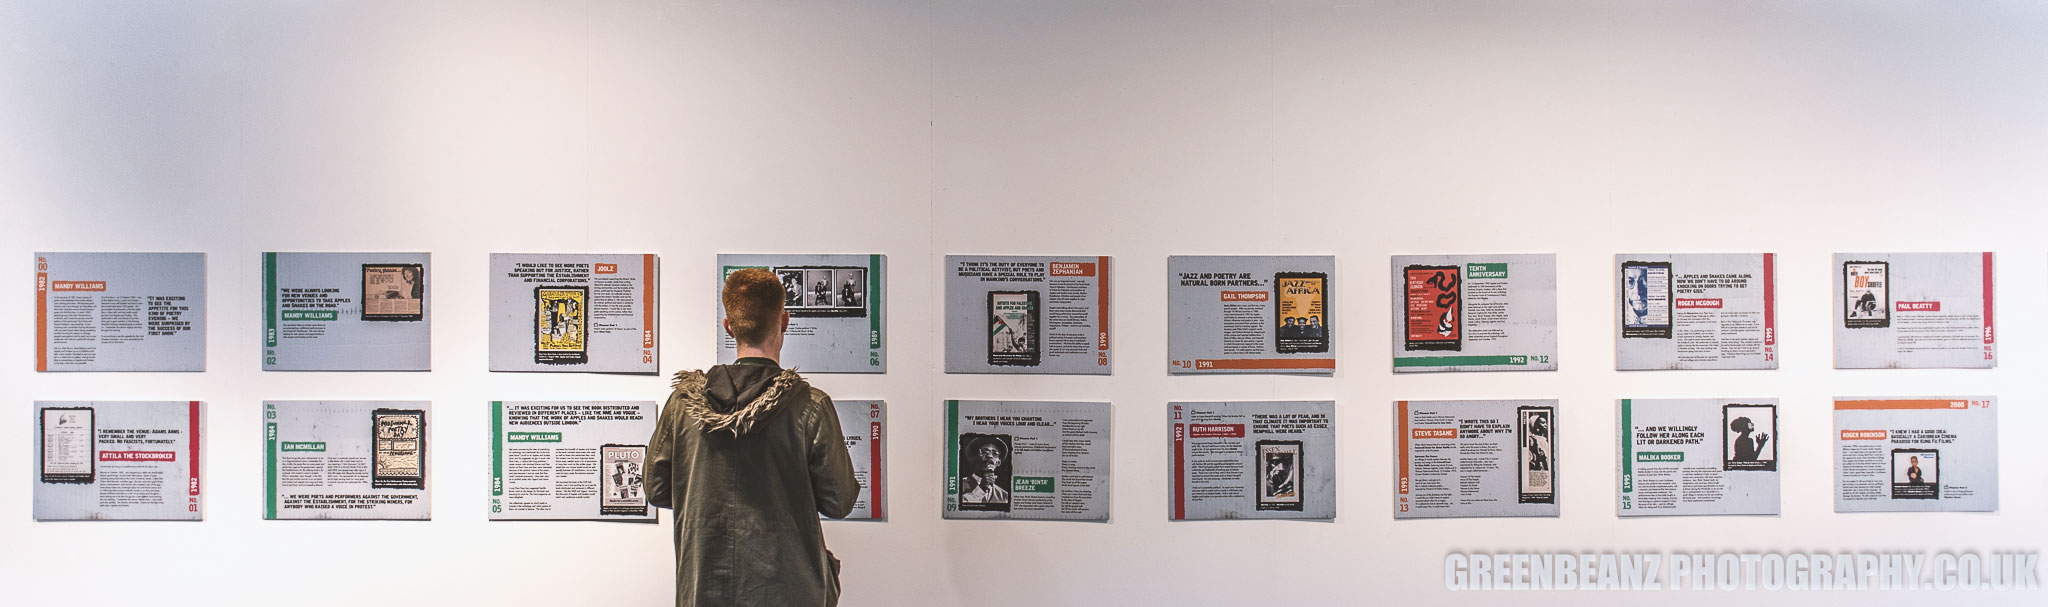 APPLES AND SNAKES 35 Years : Poetry Pioneers exhibition at Ocean Studios